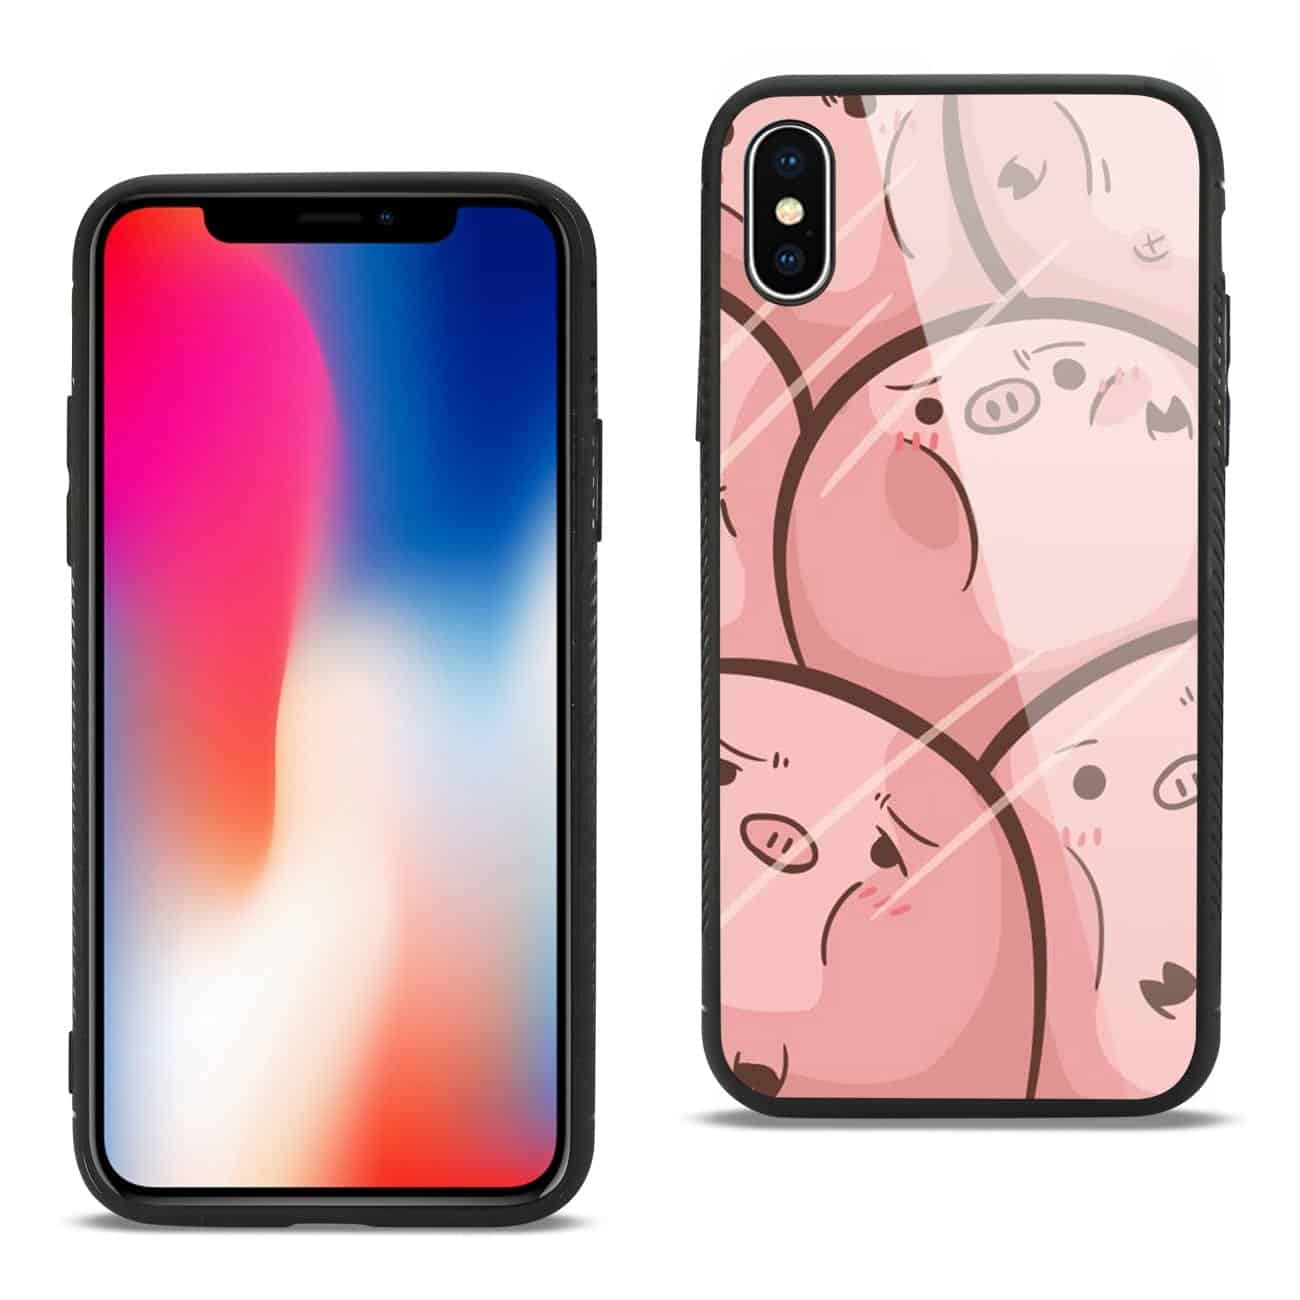 iPhone X/iPhone XS Hard Glass Design TPU Case With Pink Pig Faces